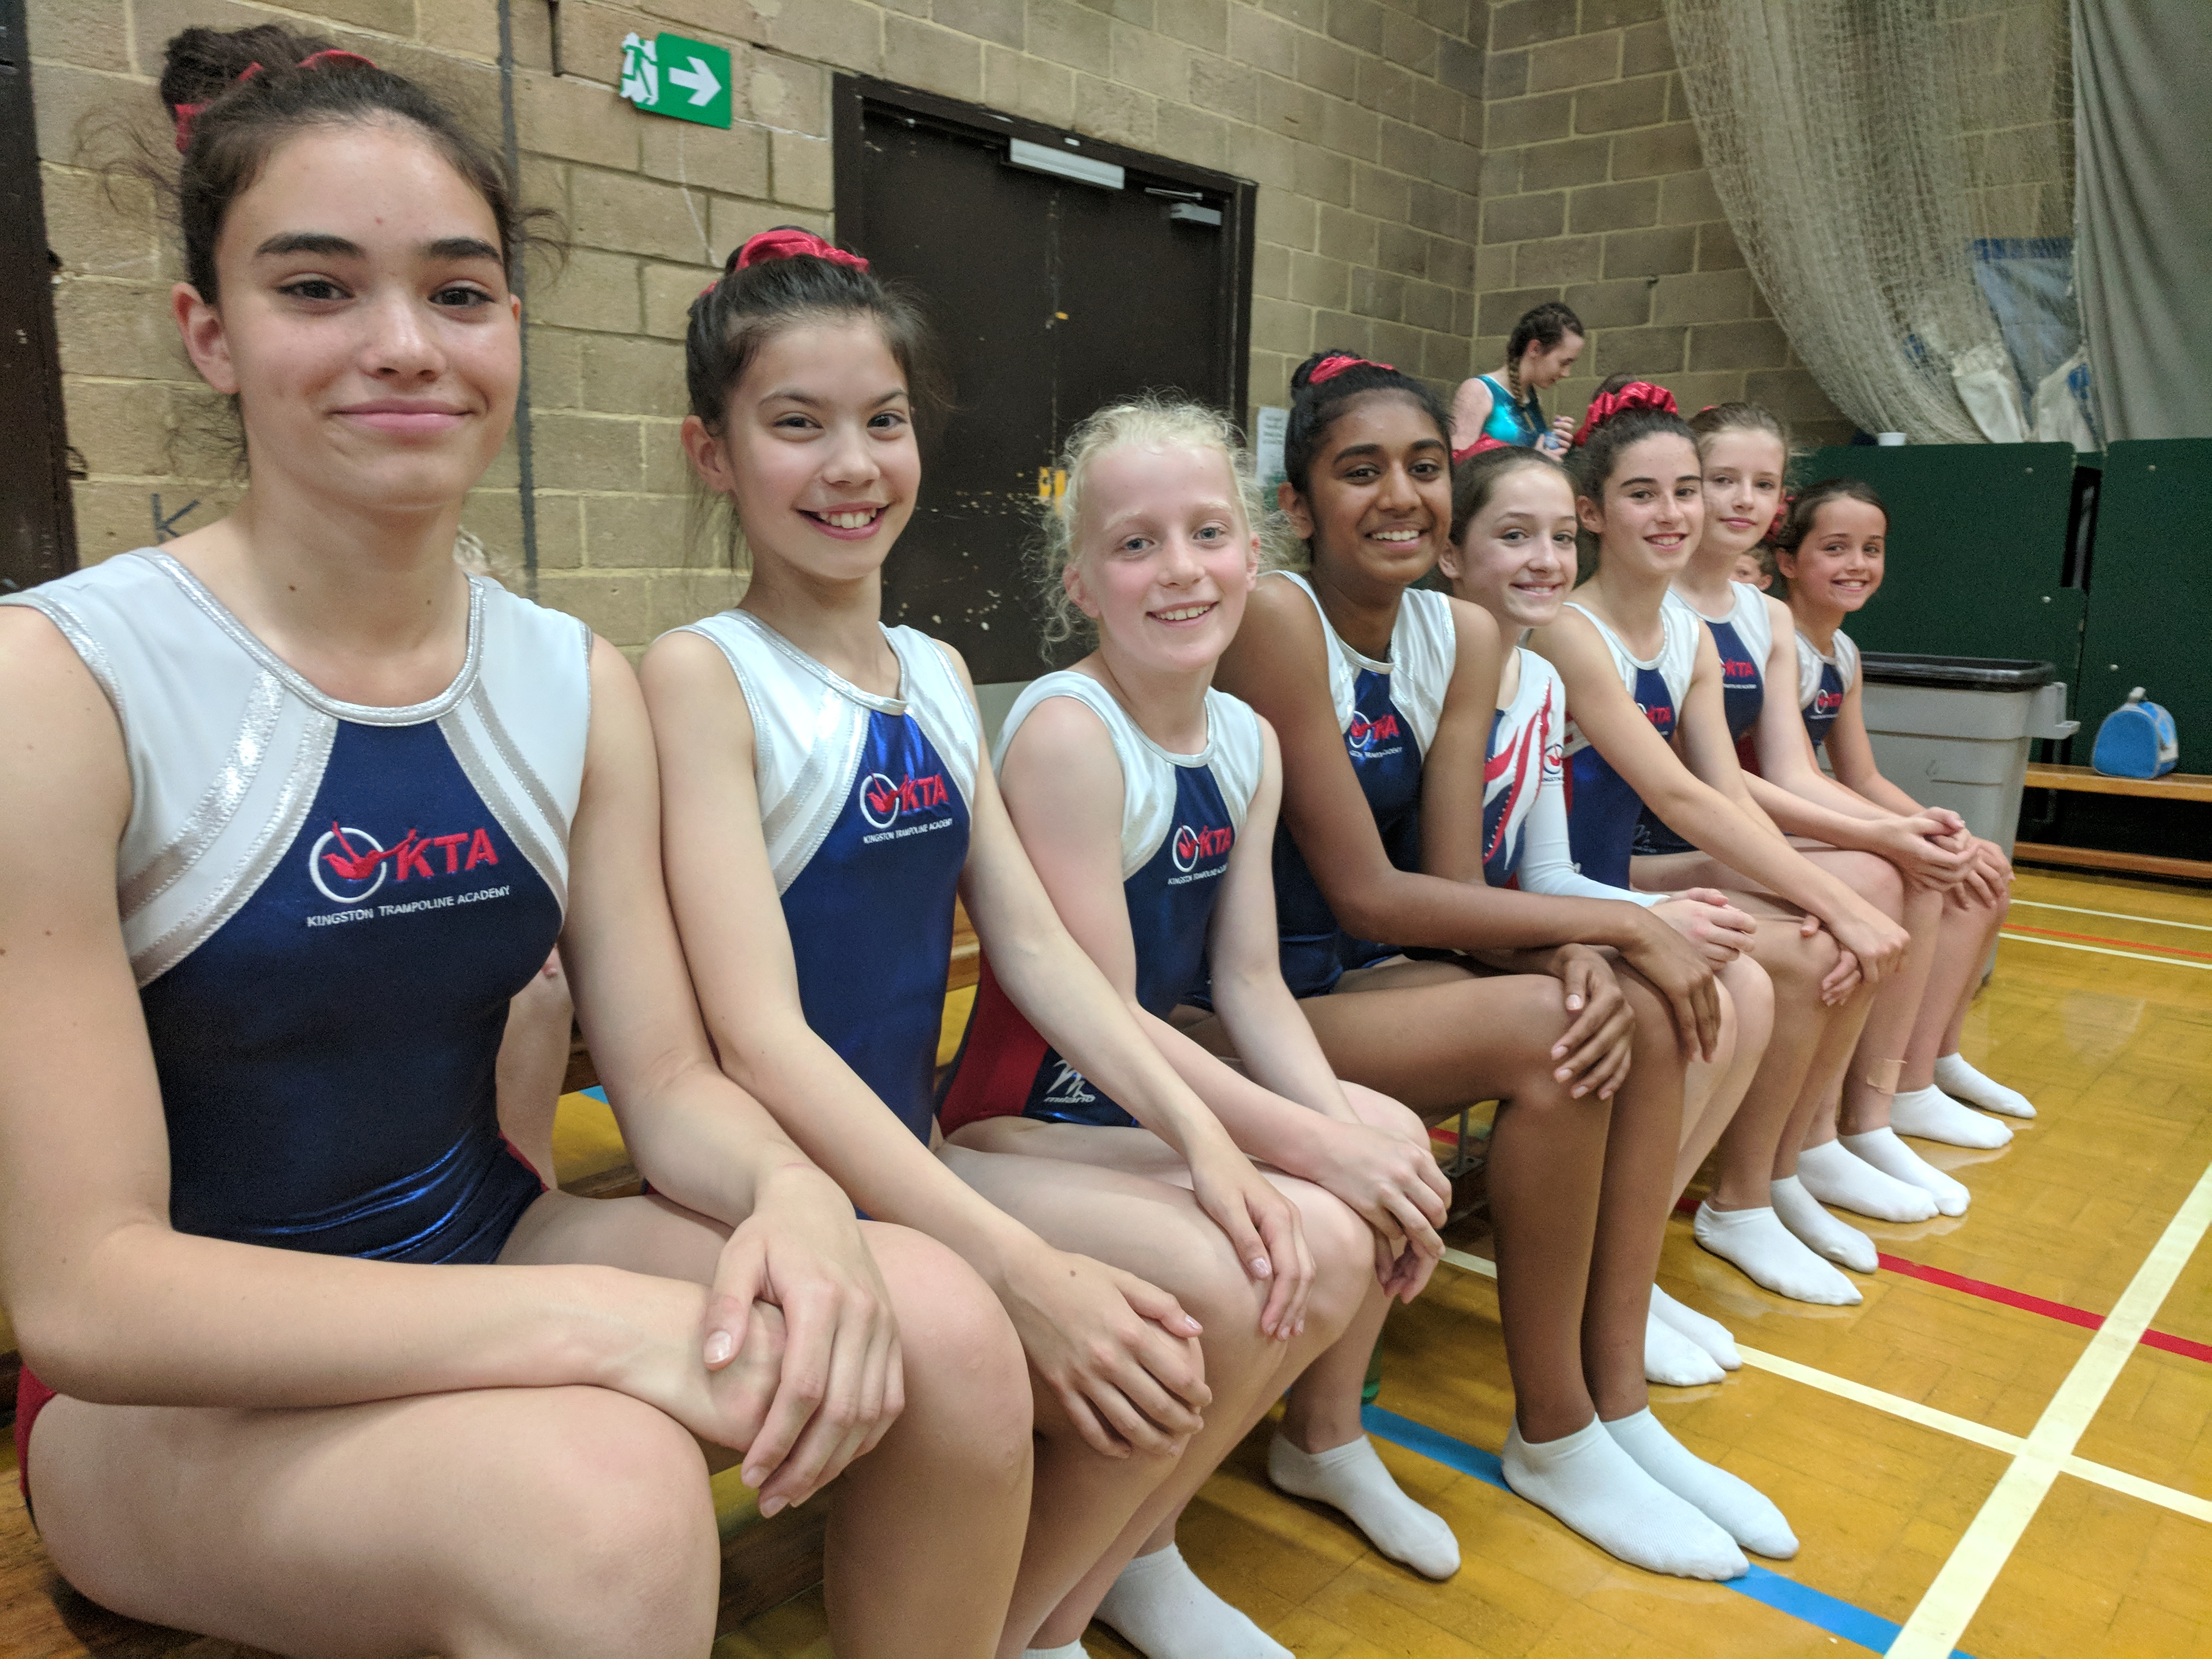 London Regional 4 - Gymnasts compete from Kingston Trampoline Academy